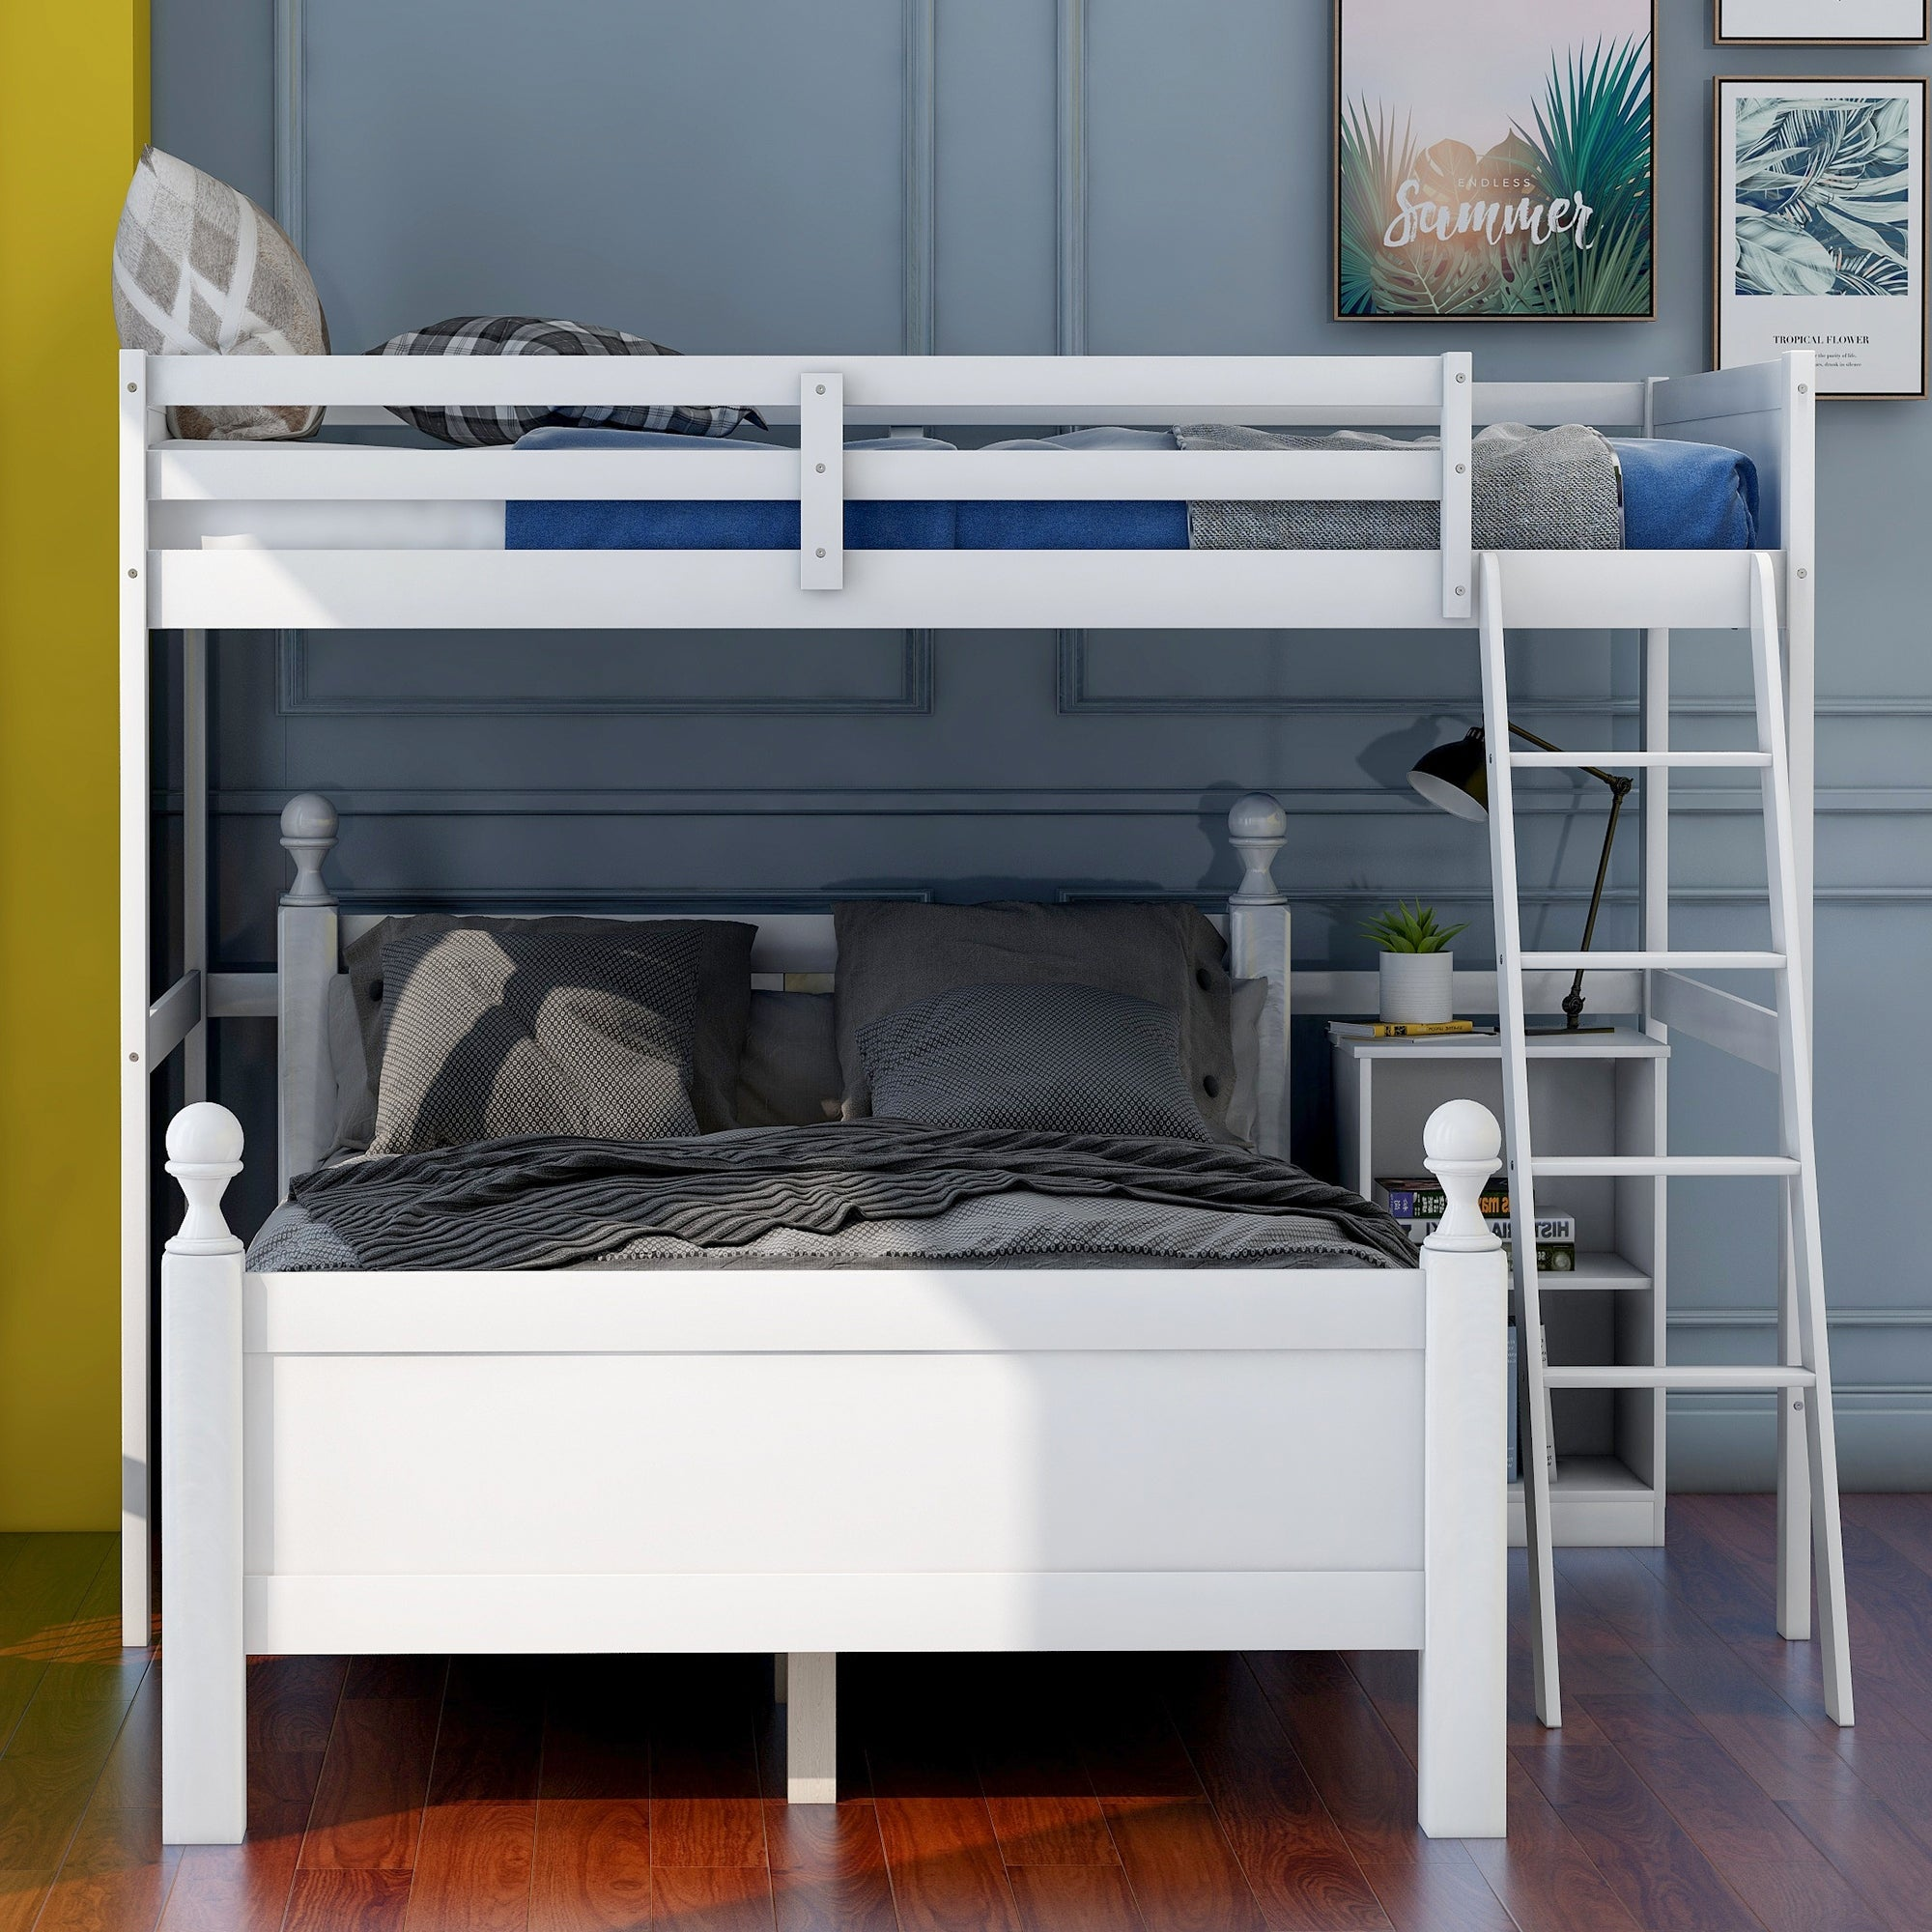 Bunk Bed With Cabinet Cheaper Than Retail Price Buy Clothing Accessories And Lifestyle Products For Women Men